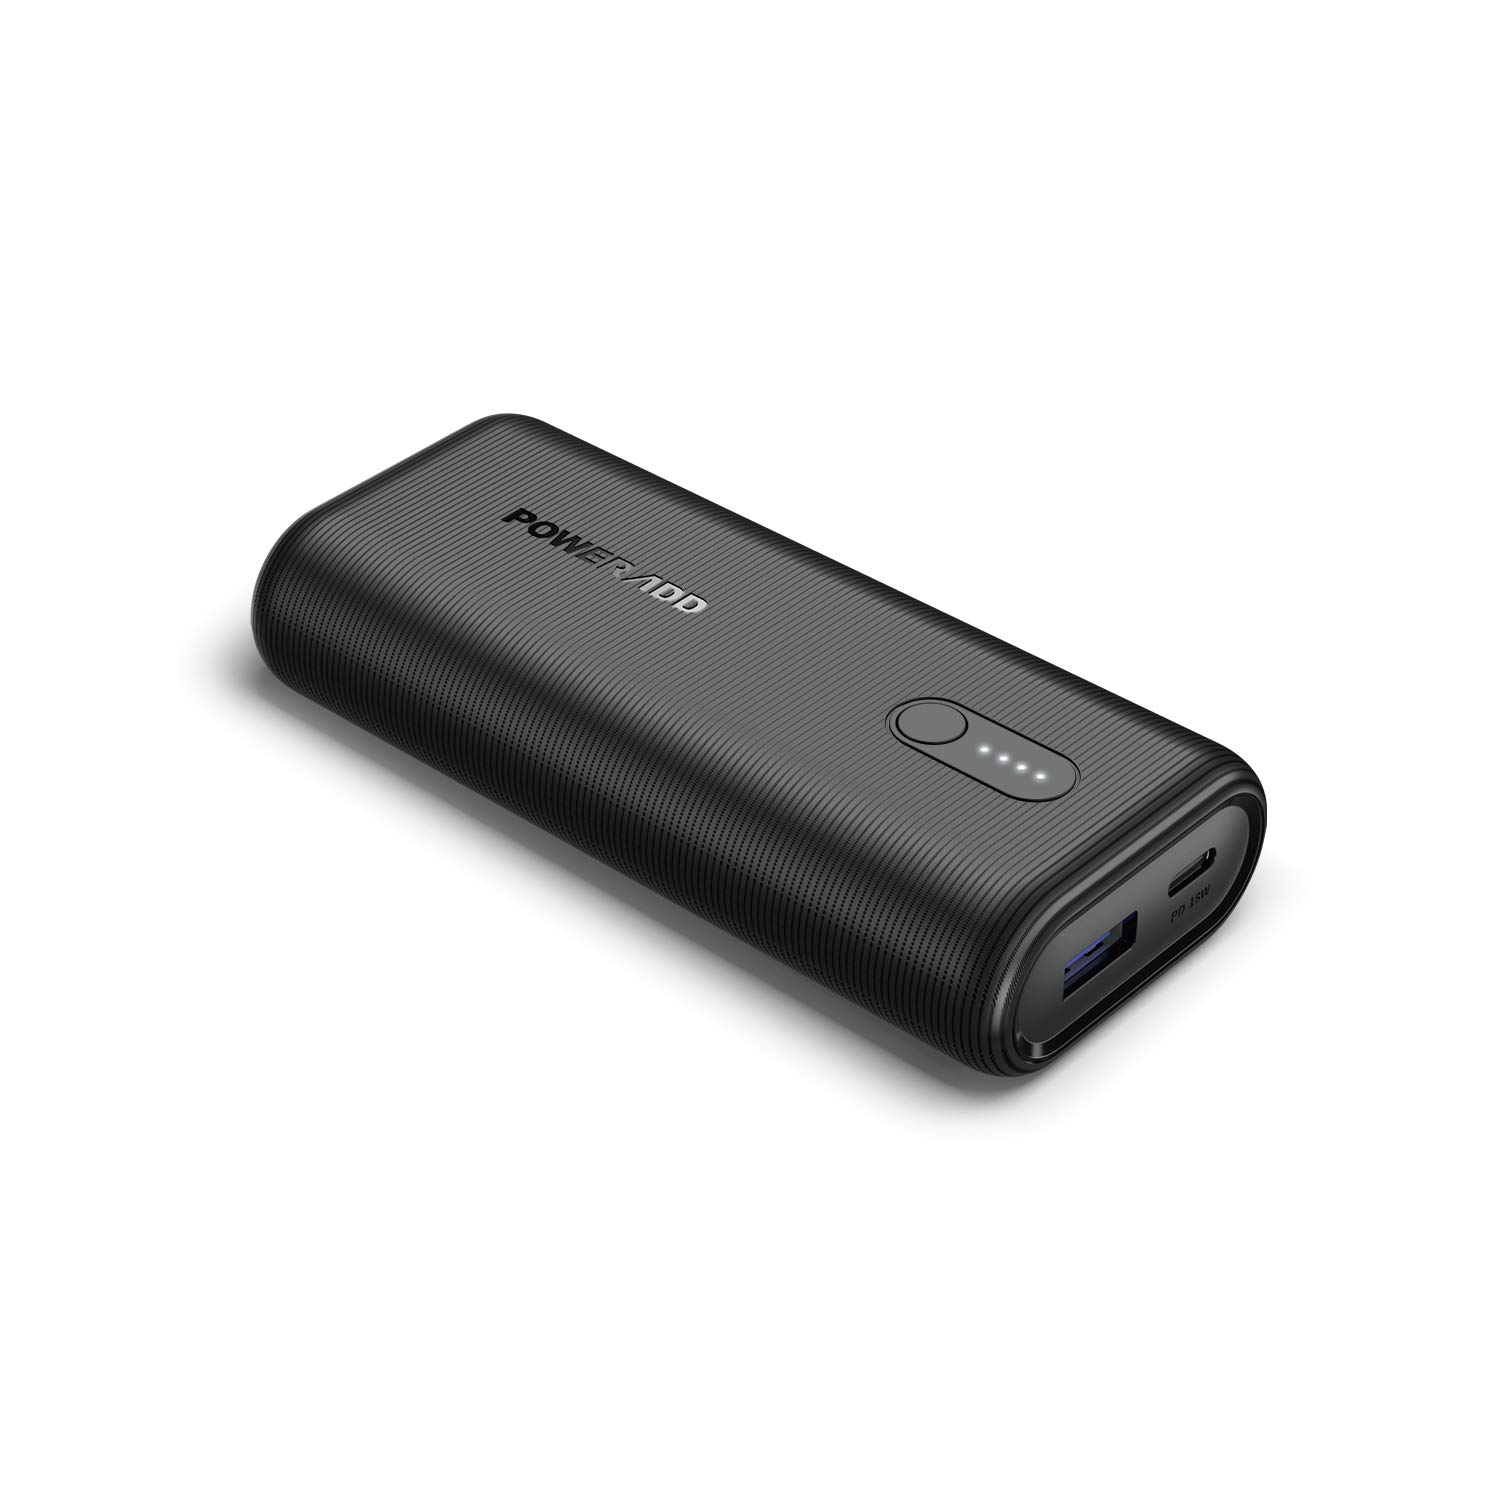 Poweradd 10000mAh 18W Power Delivery USB C Portable Charger Power Bank Fast Charge Compatible for iPhone 11, 11 Pro, 11 Pro Max, iPad, Samsung, Huawei, most other Phones and Tablets-Black